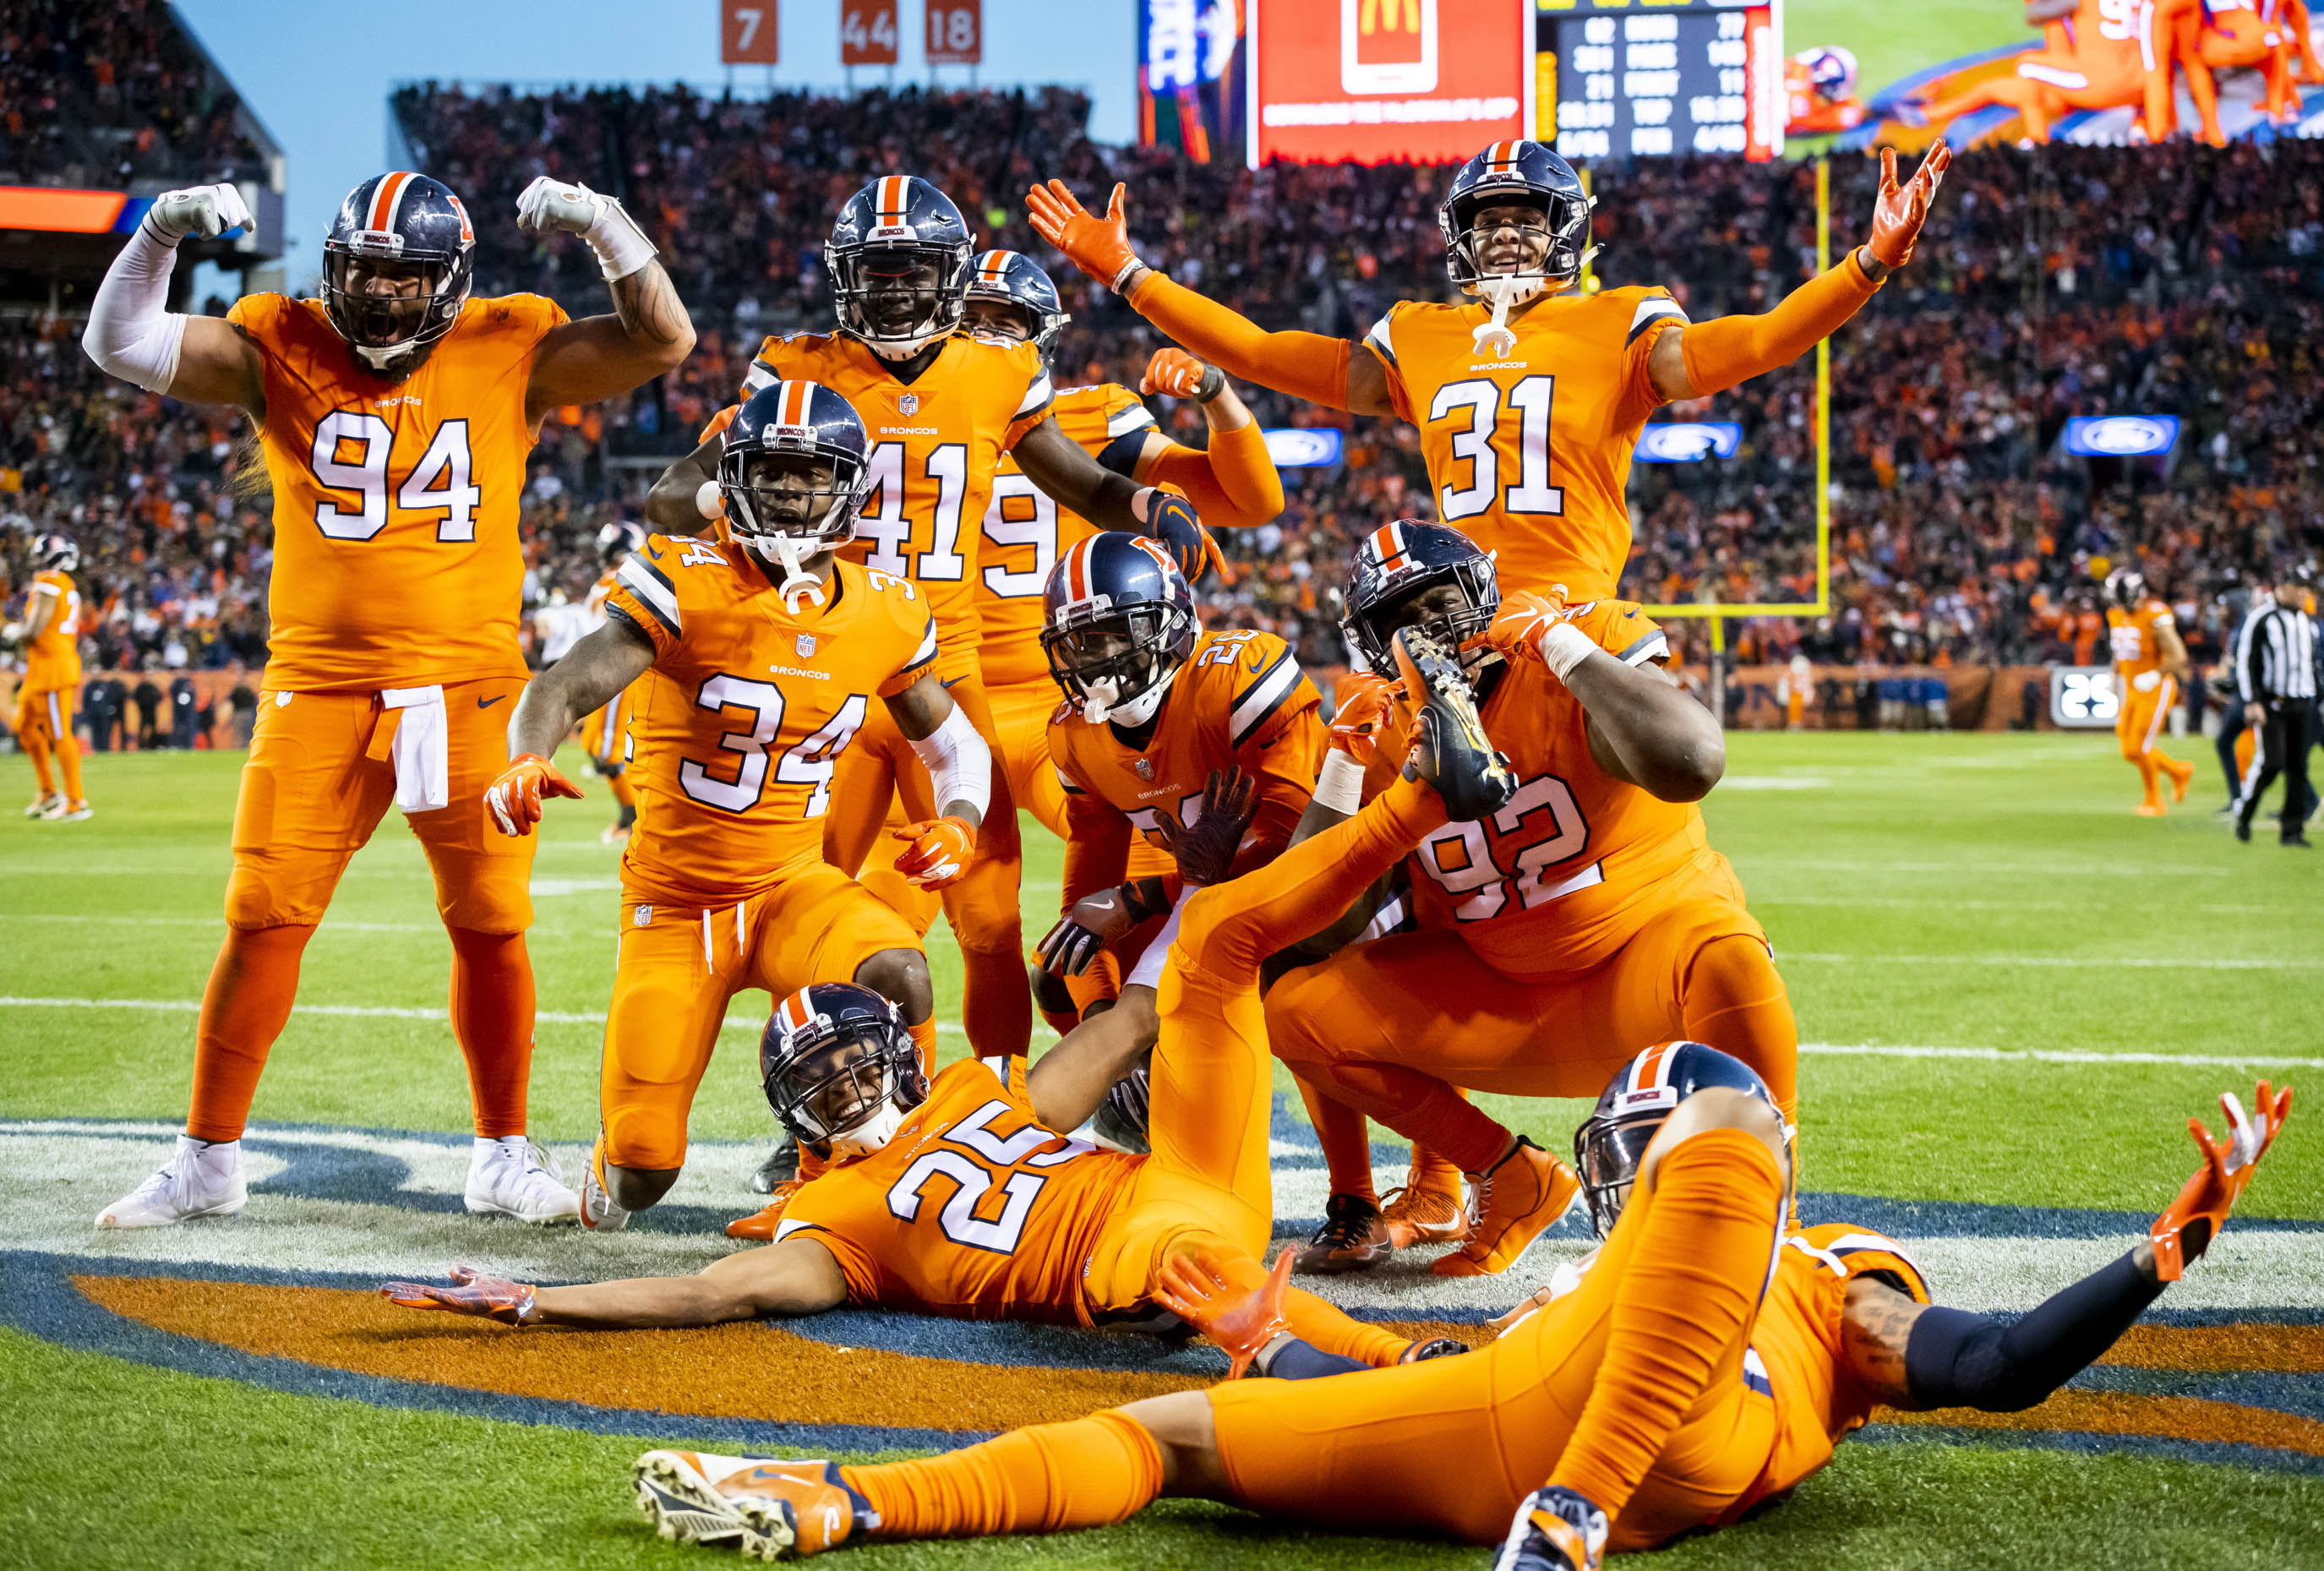 Denver Broncos players celebrate at the end zone after Darin Stewart s  fumble recovery against the Pittsburgh Steelers at Broncos Stadium at Mile  High on ... 69c3638a2